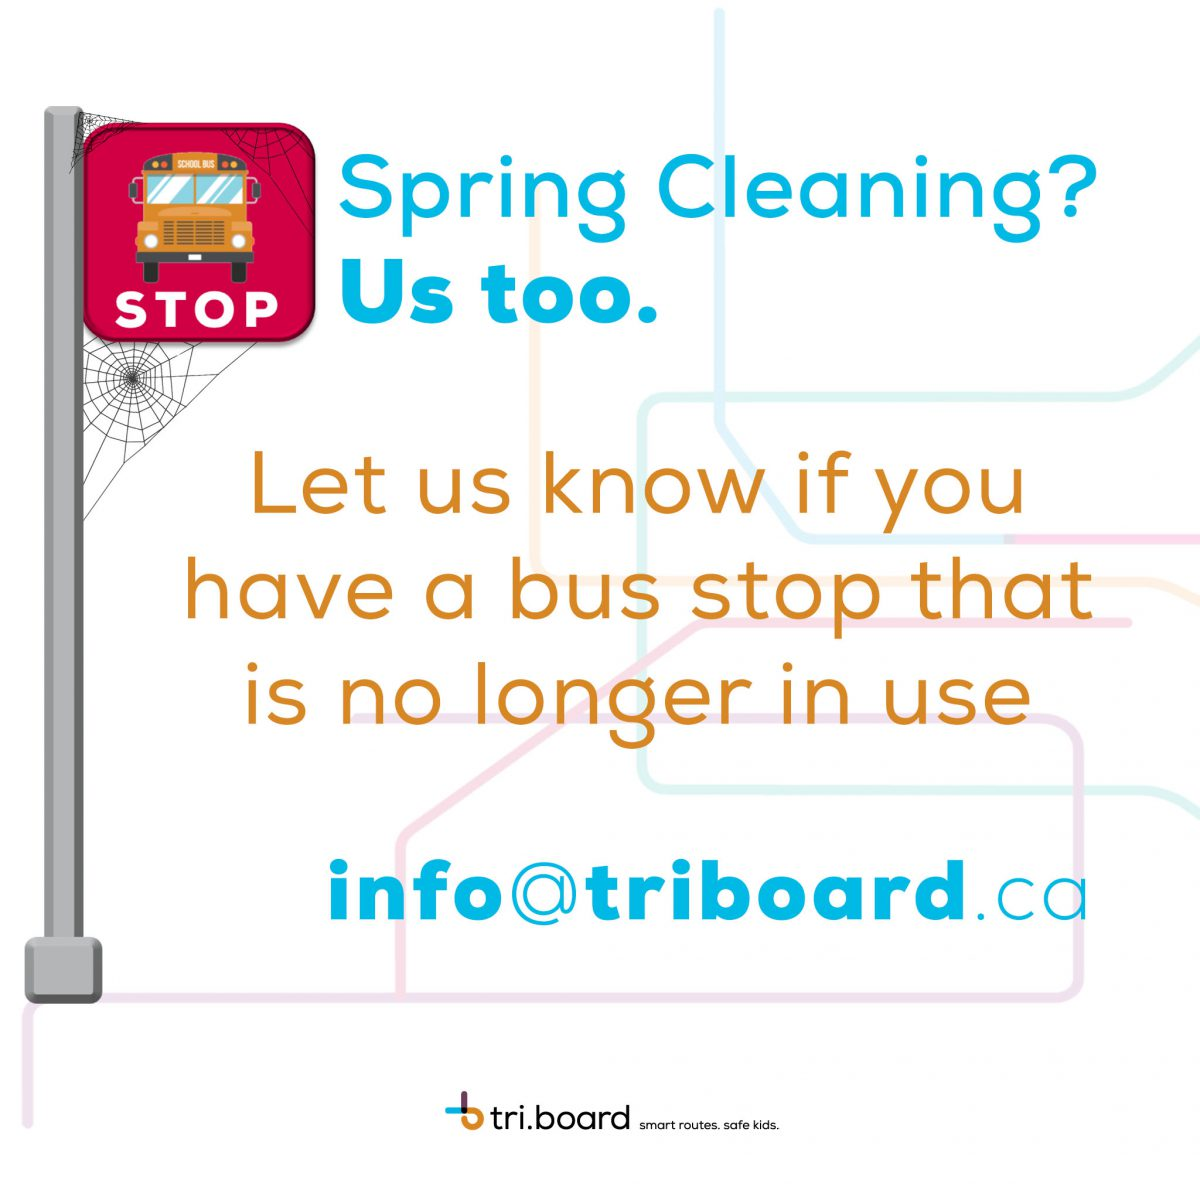 Are You No Longer Using a Bus Stop? We Need to Know